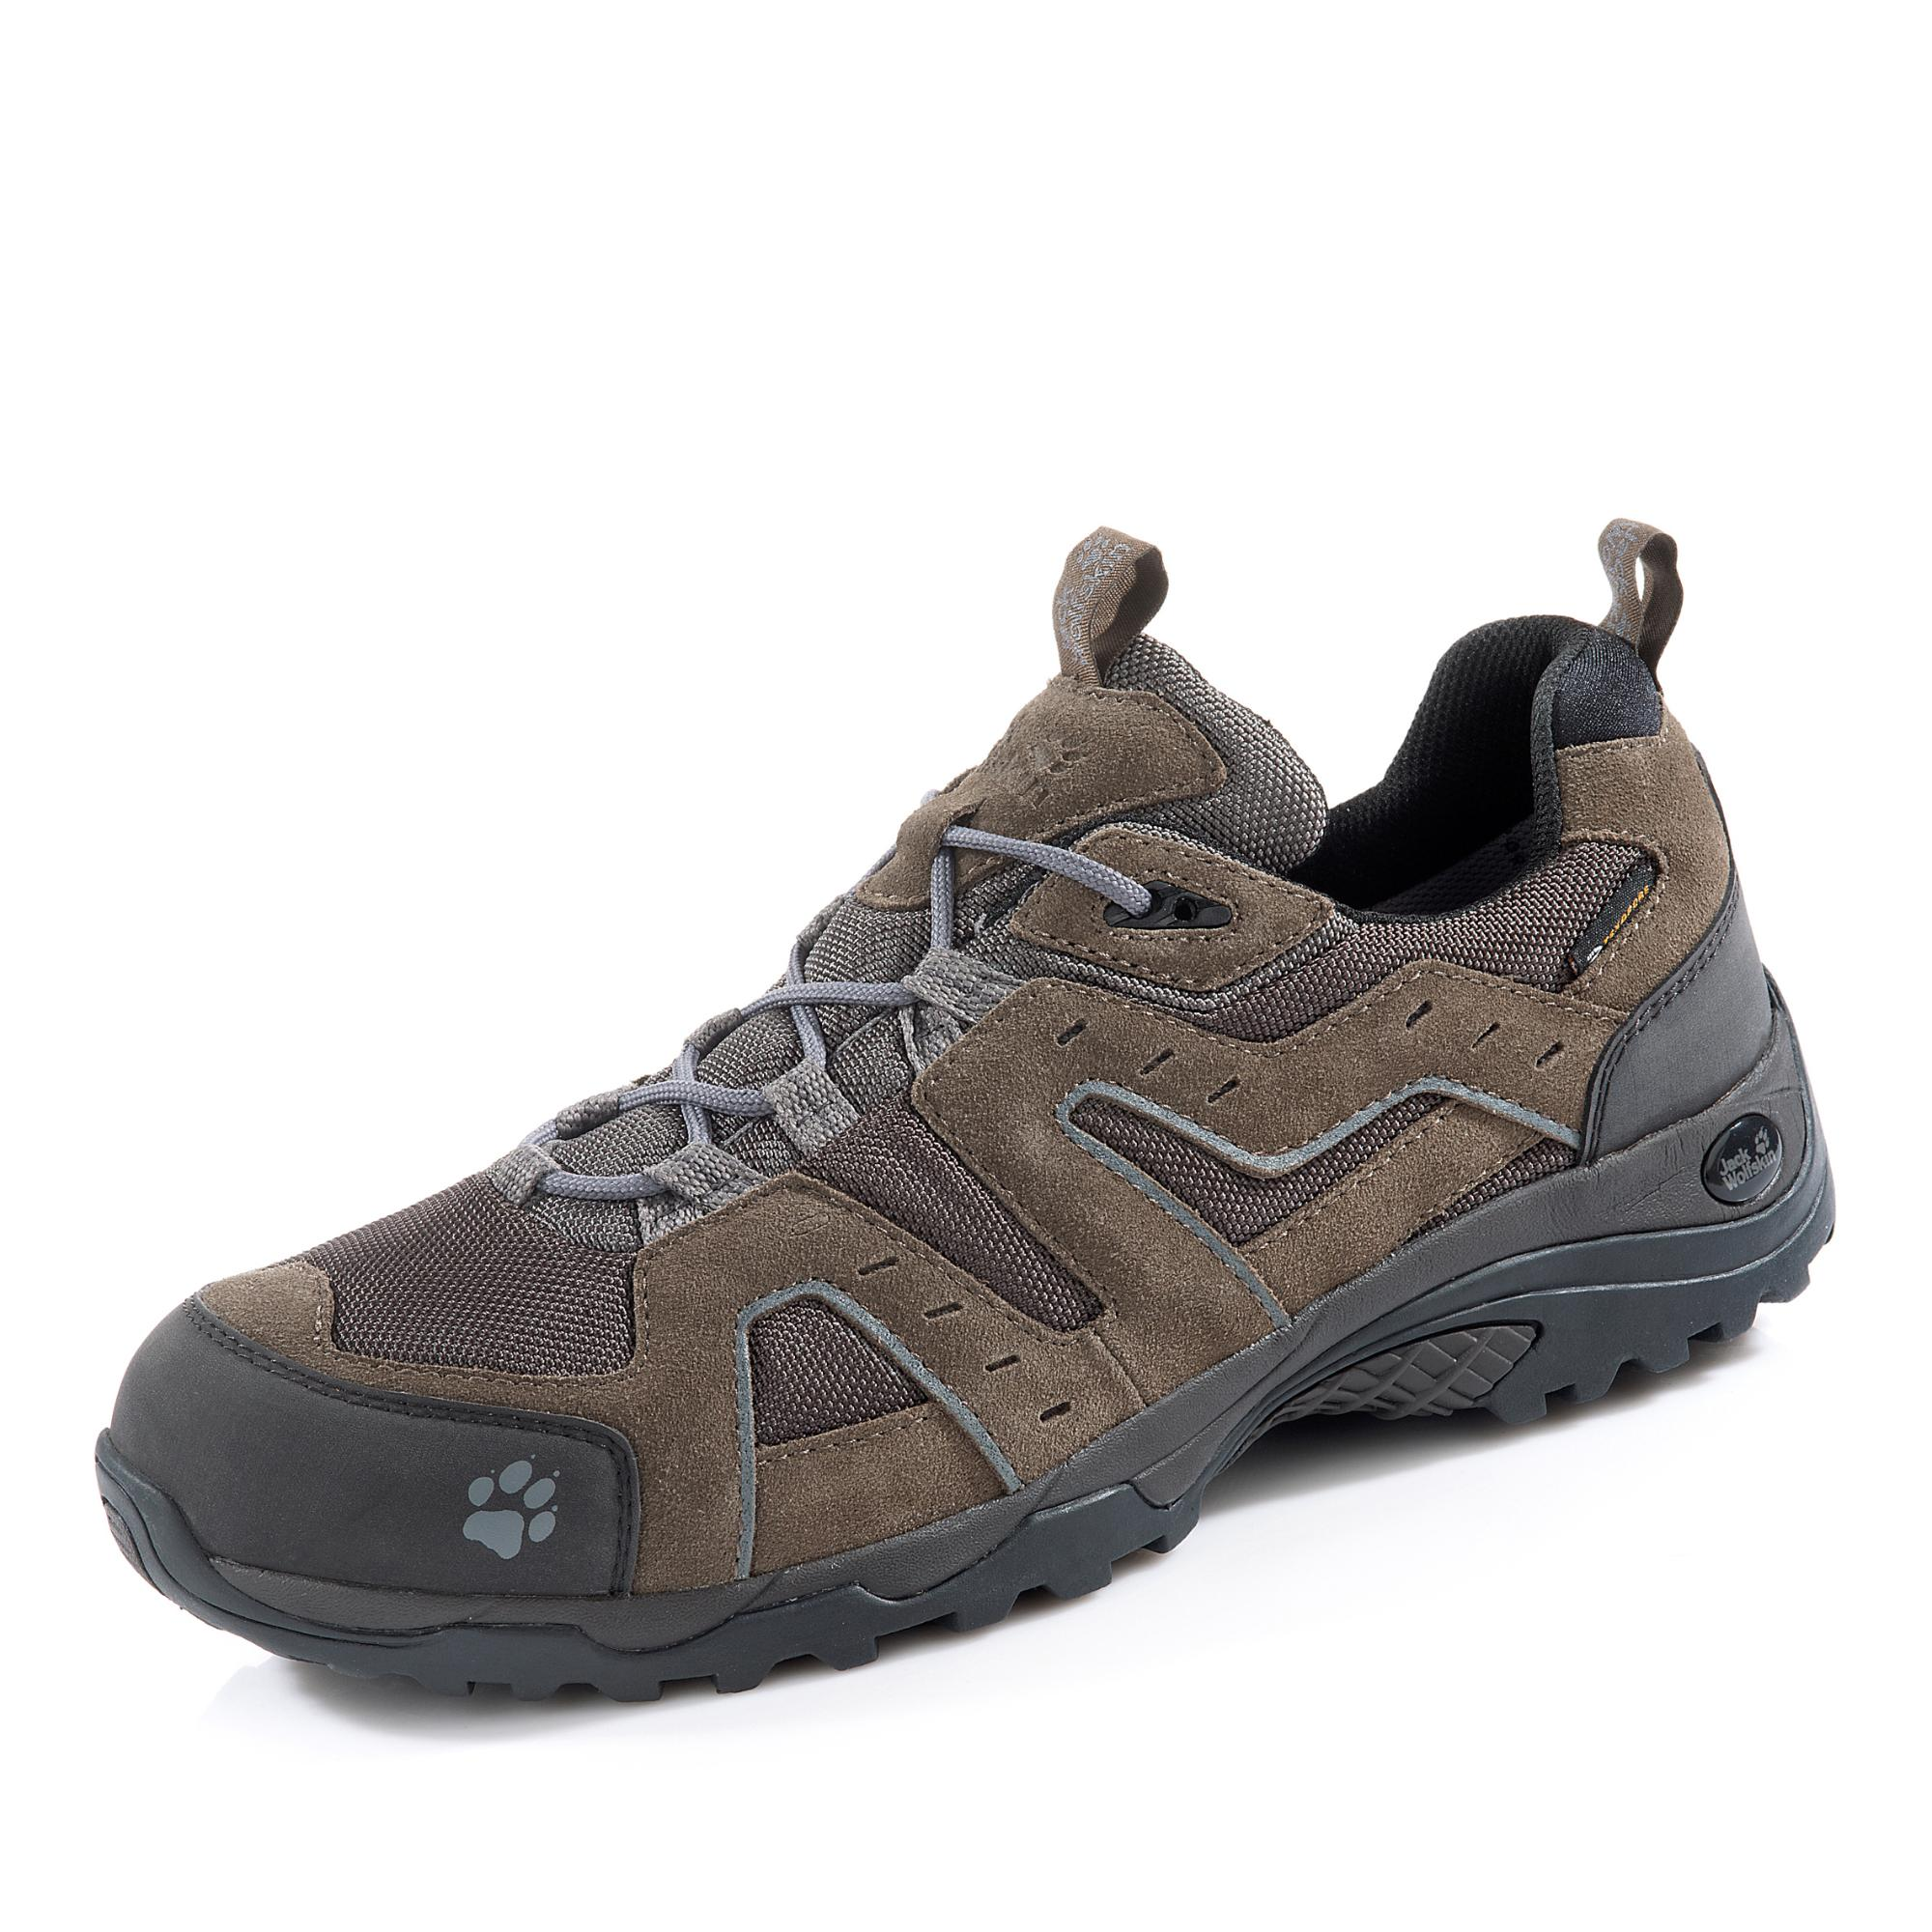 Jack Wolfskin Glenwood Texapore® Wanderschuh, Groesse 6,5, Taupe